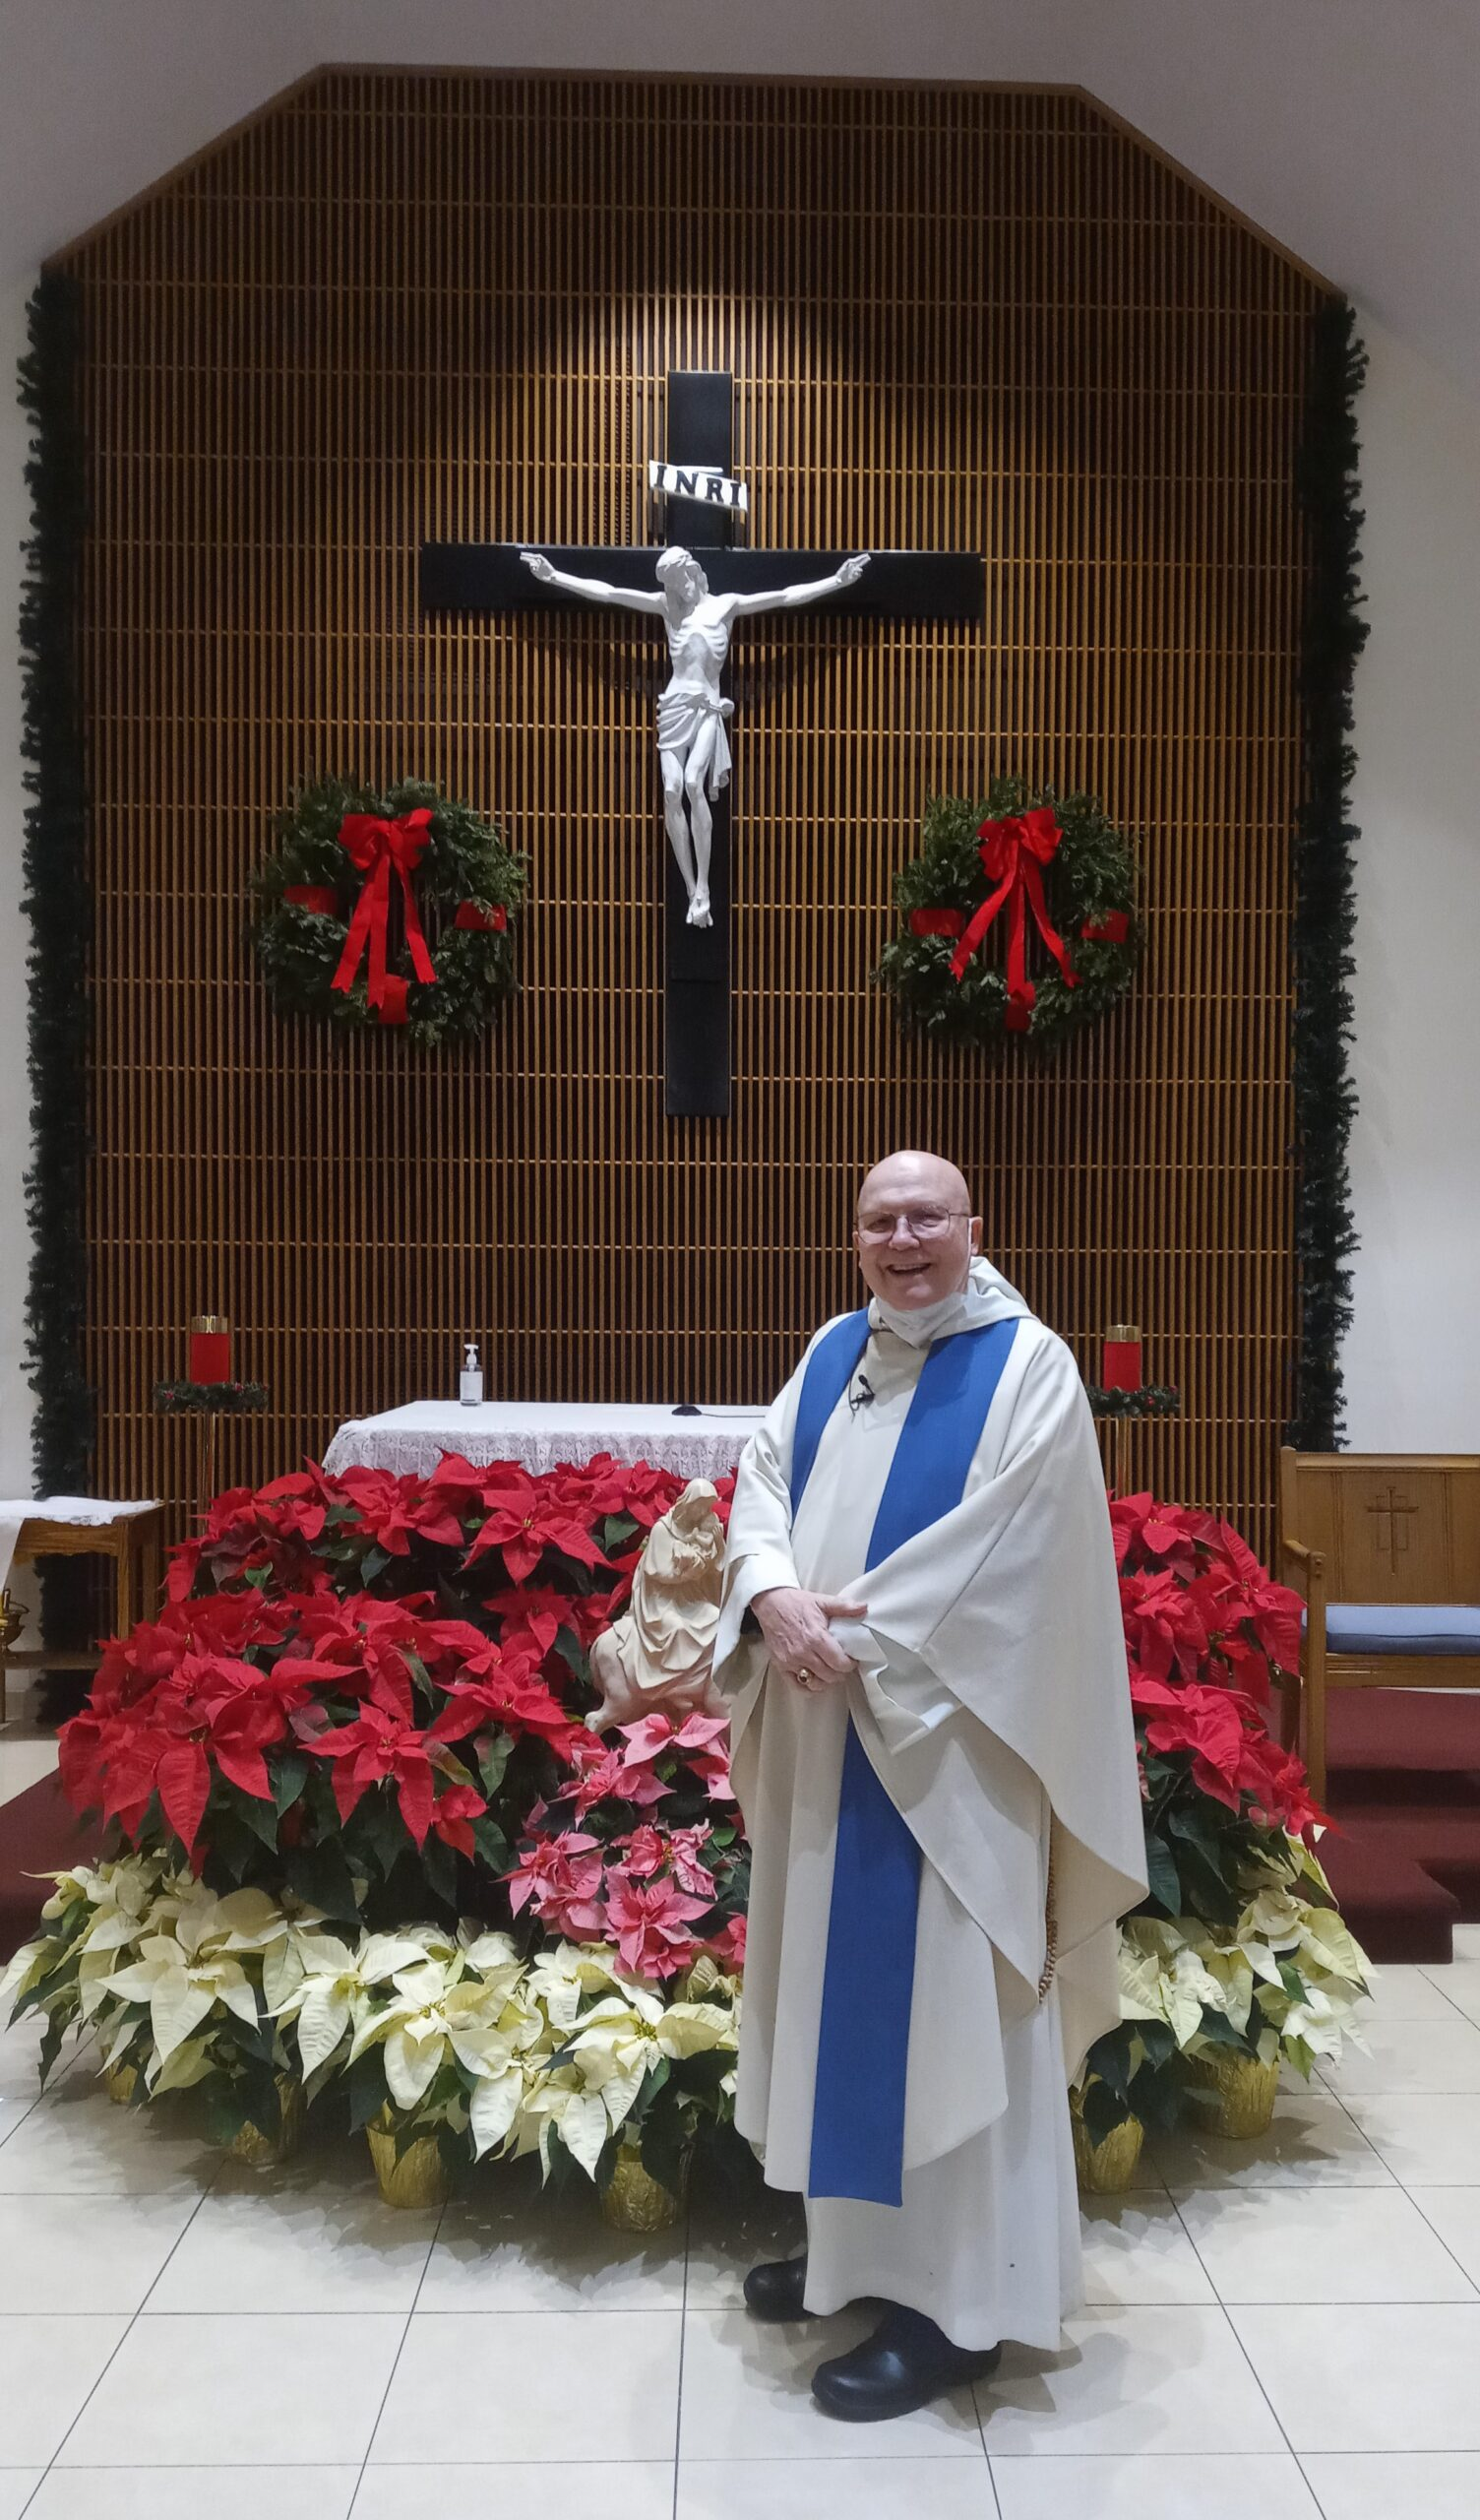 Father Hugh in front of Christmas Decorations